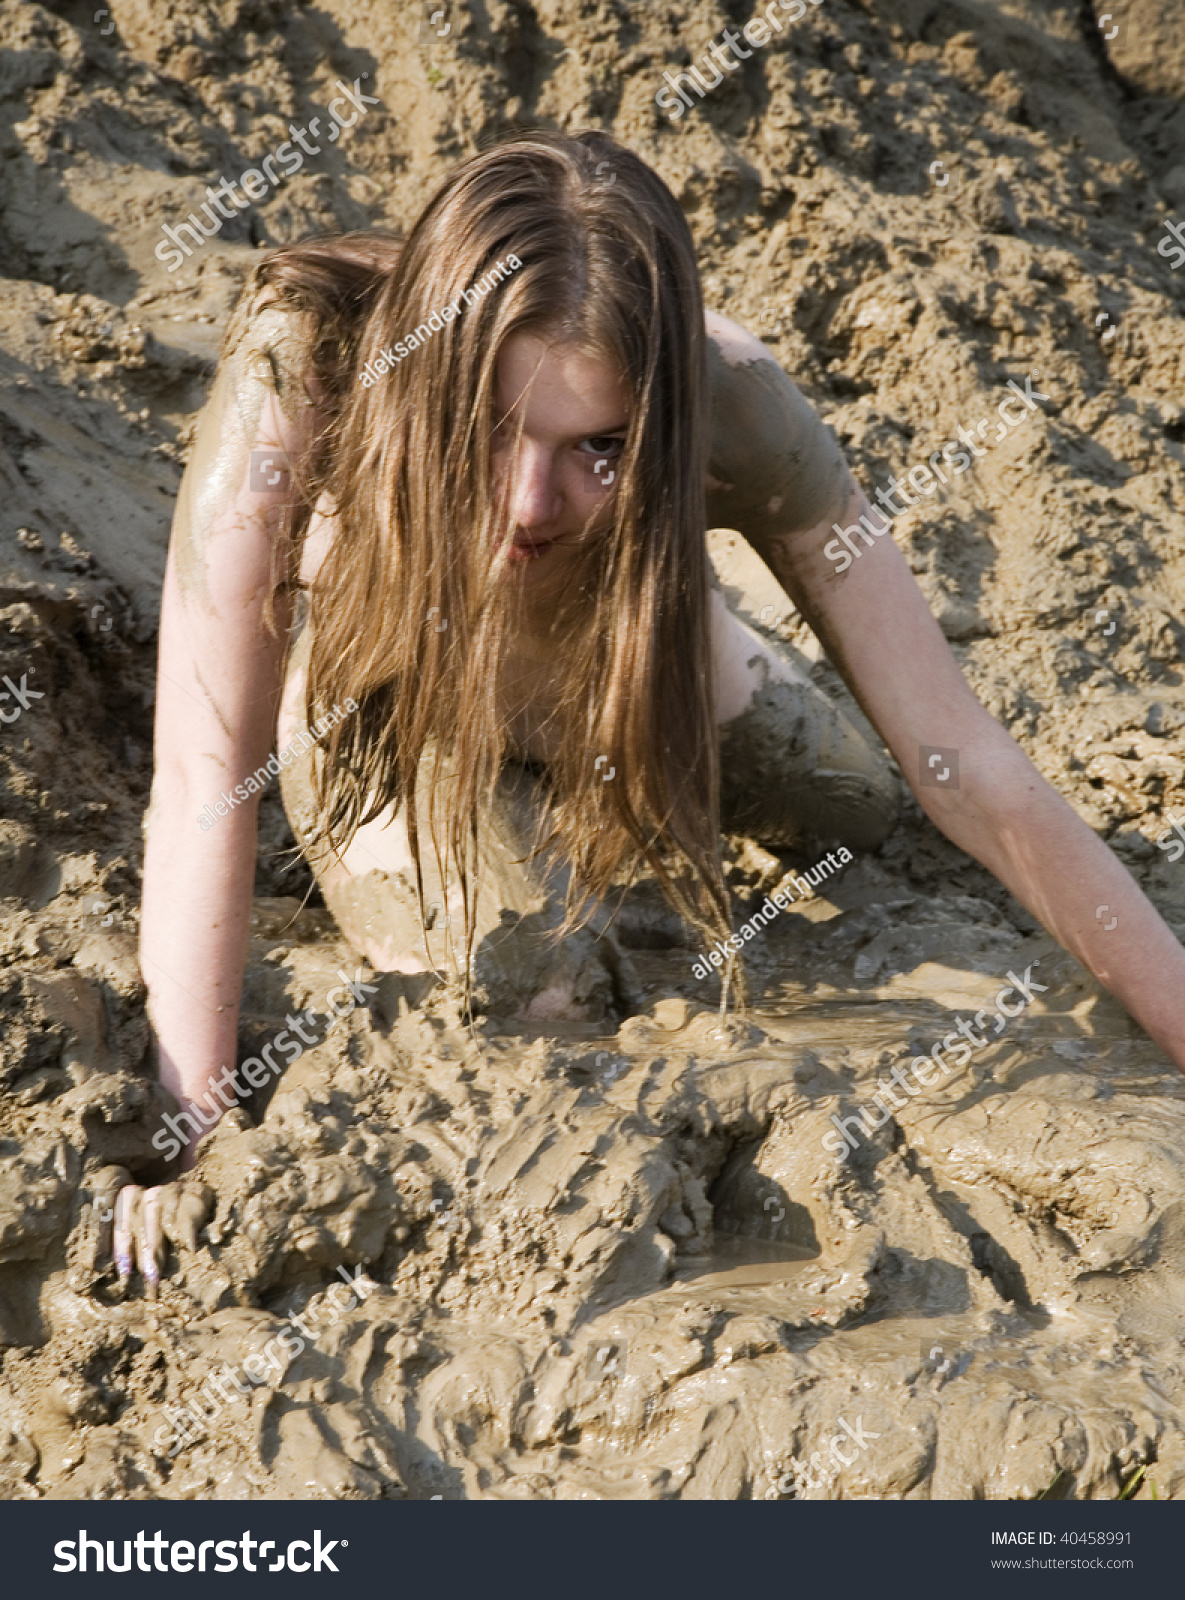 sexy nude girls playing in the mud